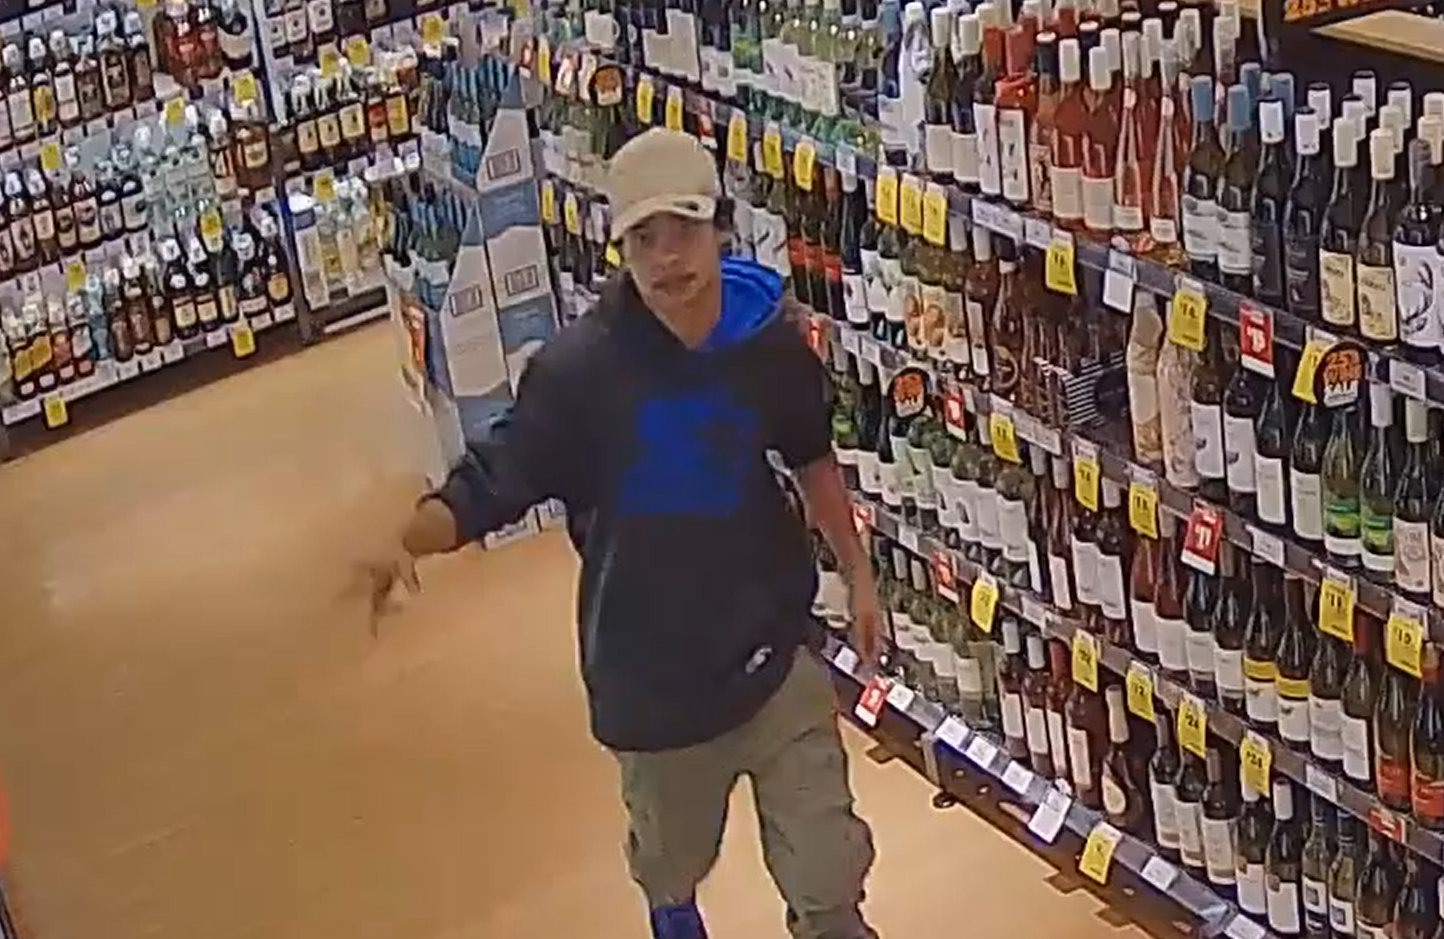 Article image for Hadfield supermarket attack: Police hunt for assailant who punched a man in the head